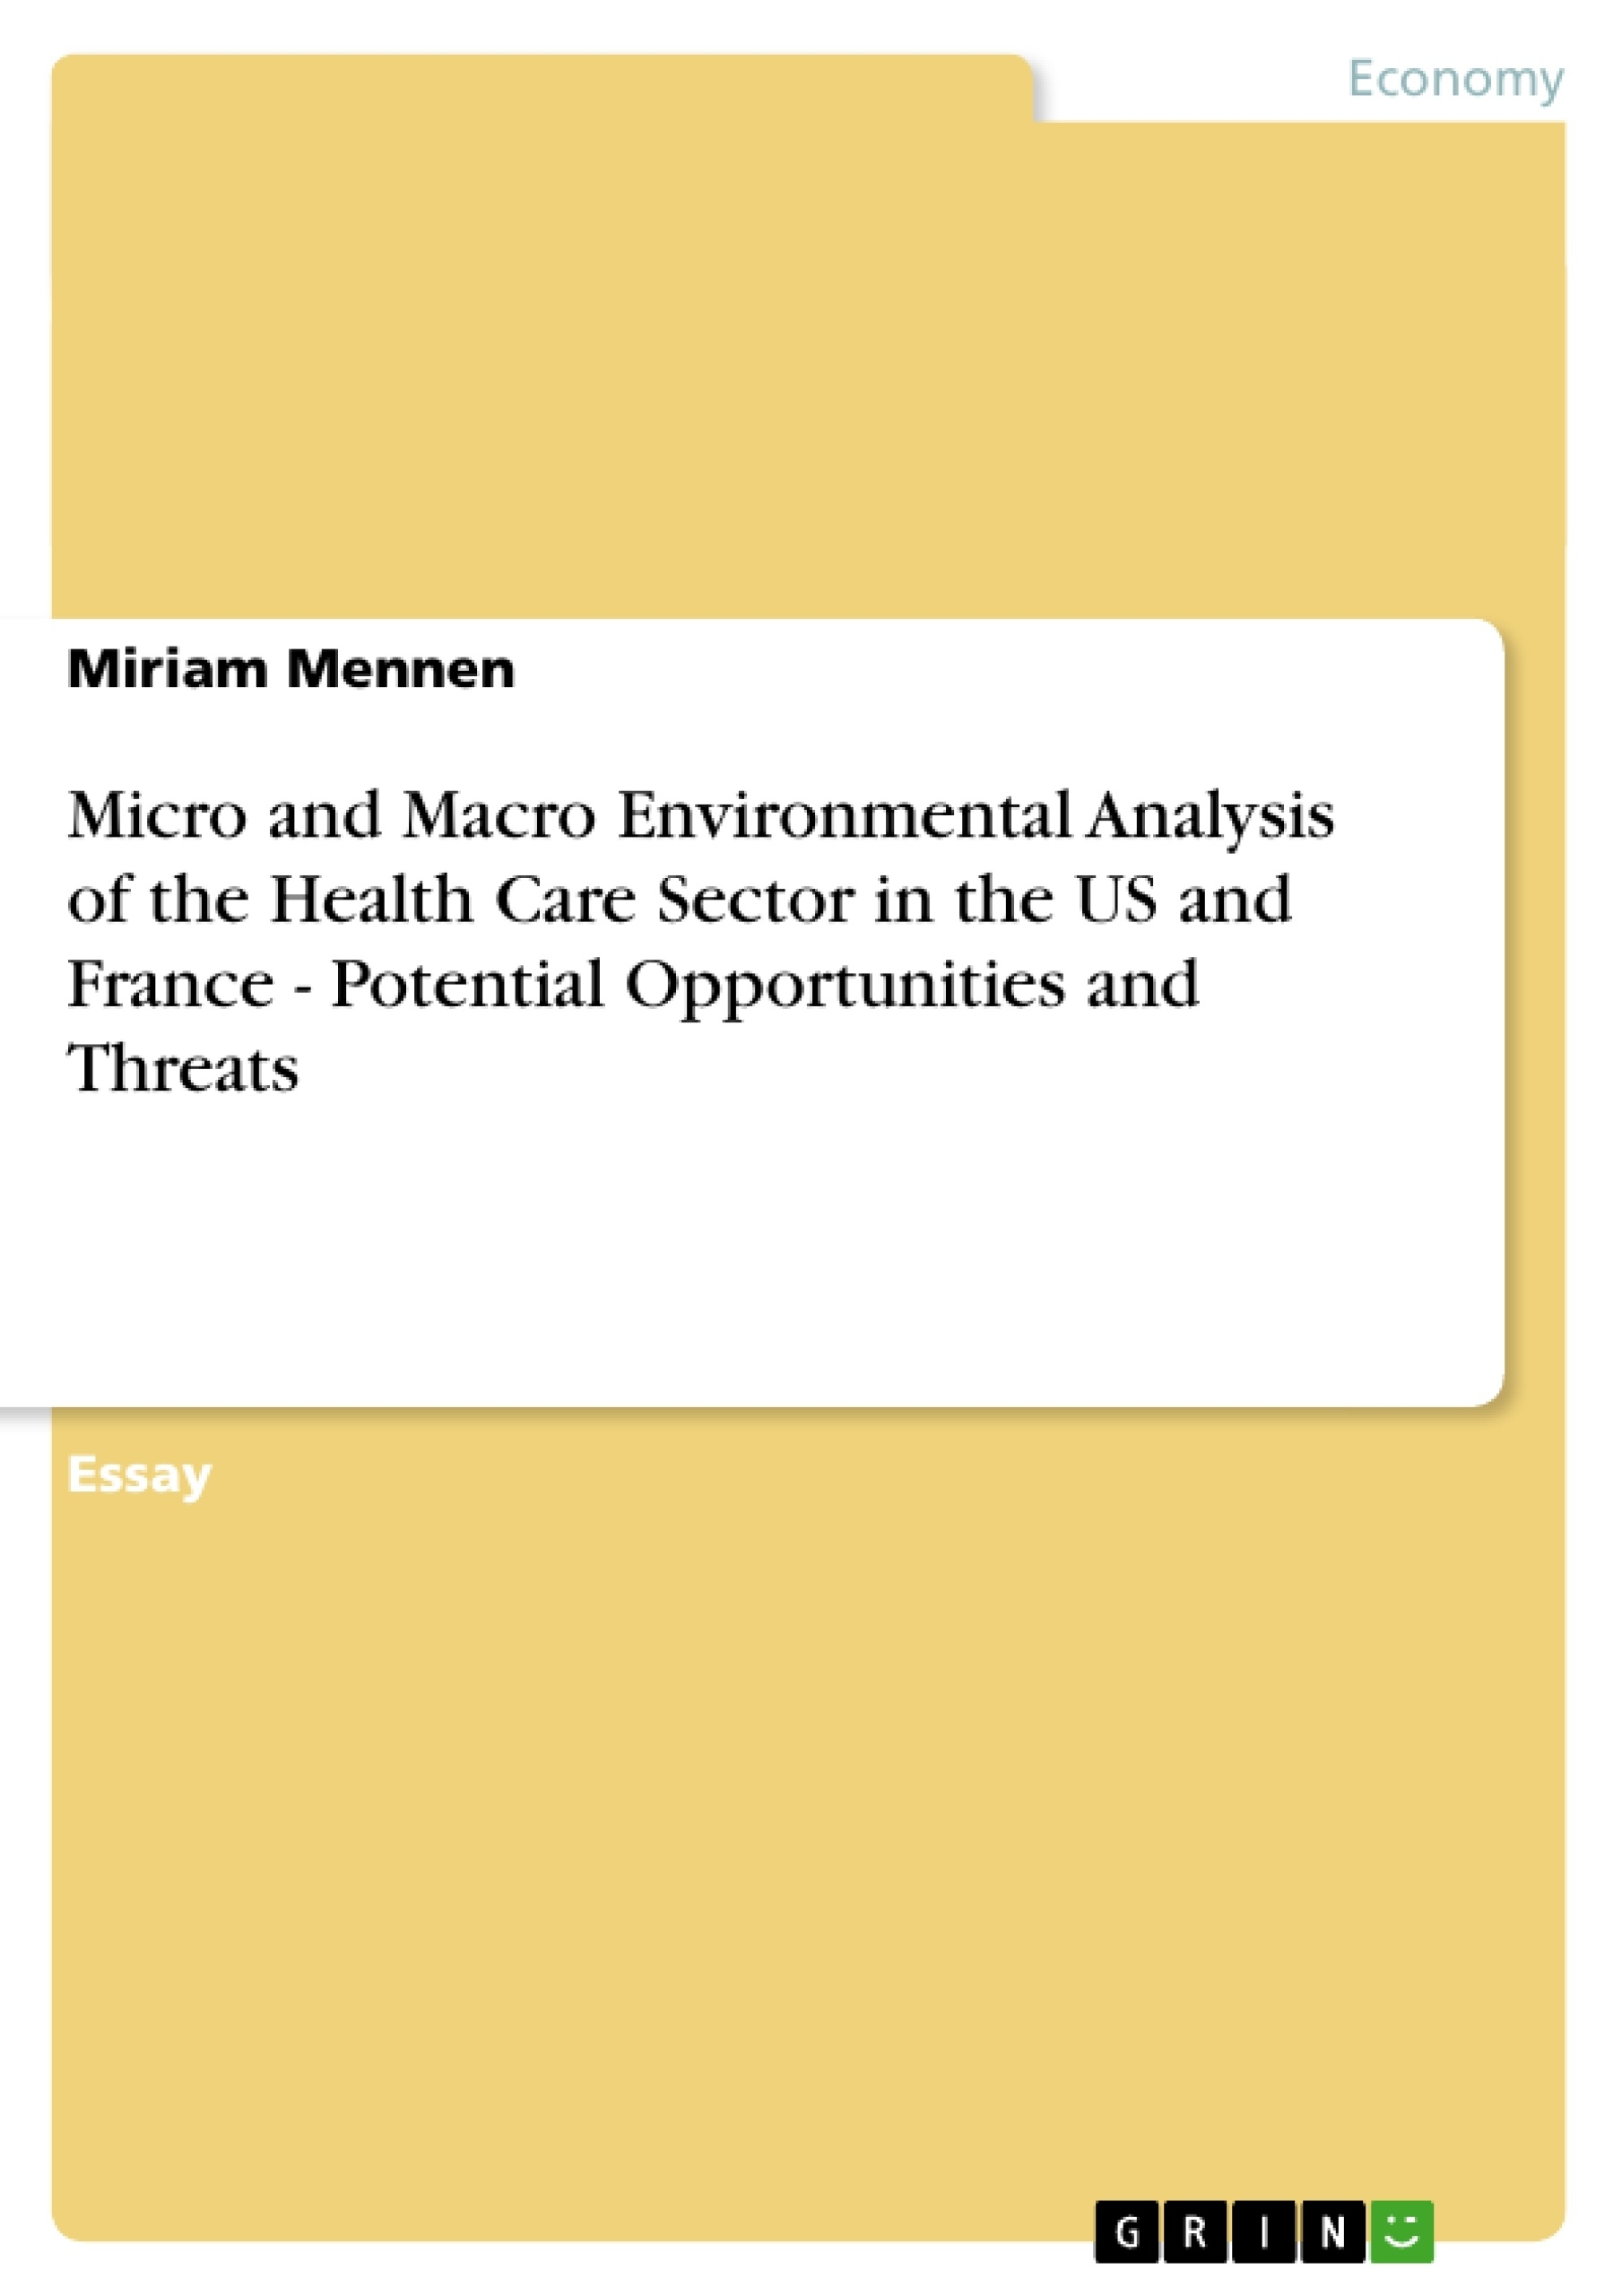 micro and macro environmental analysis of the health care sector upload your own papers earn money and win an iphone 7